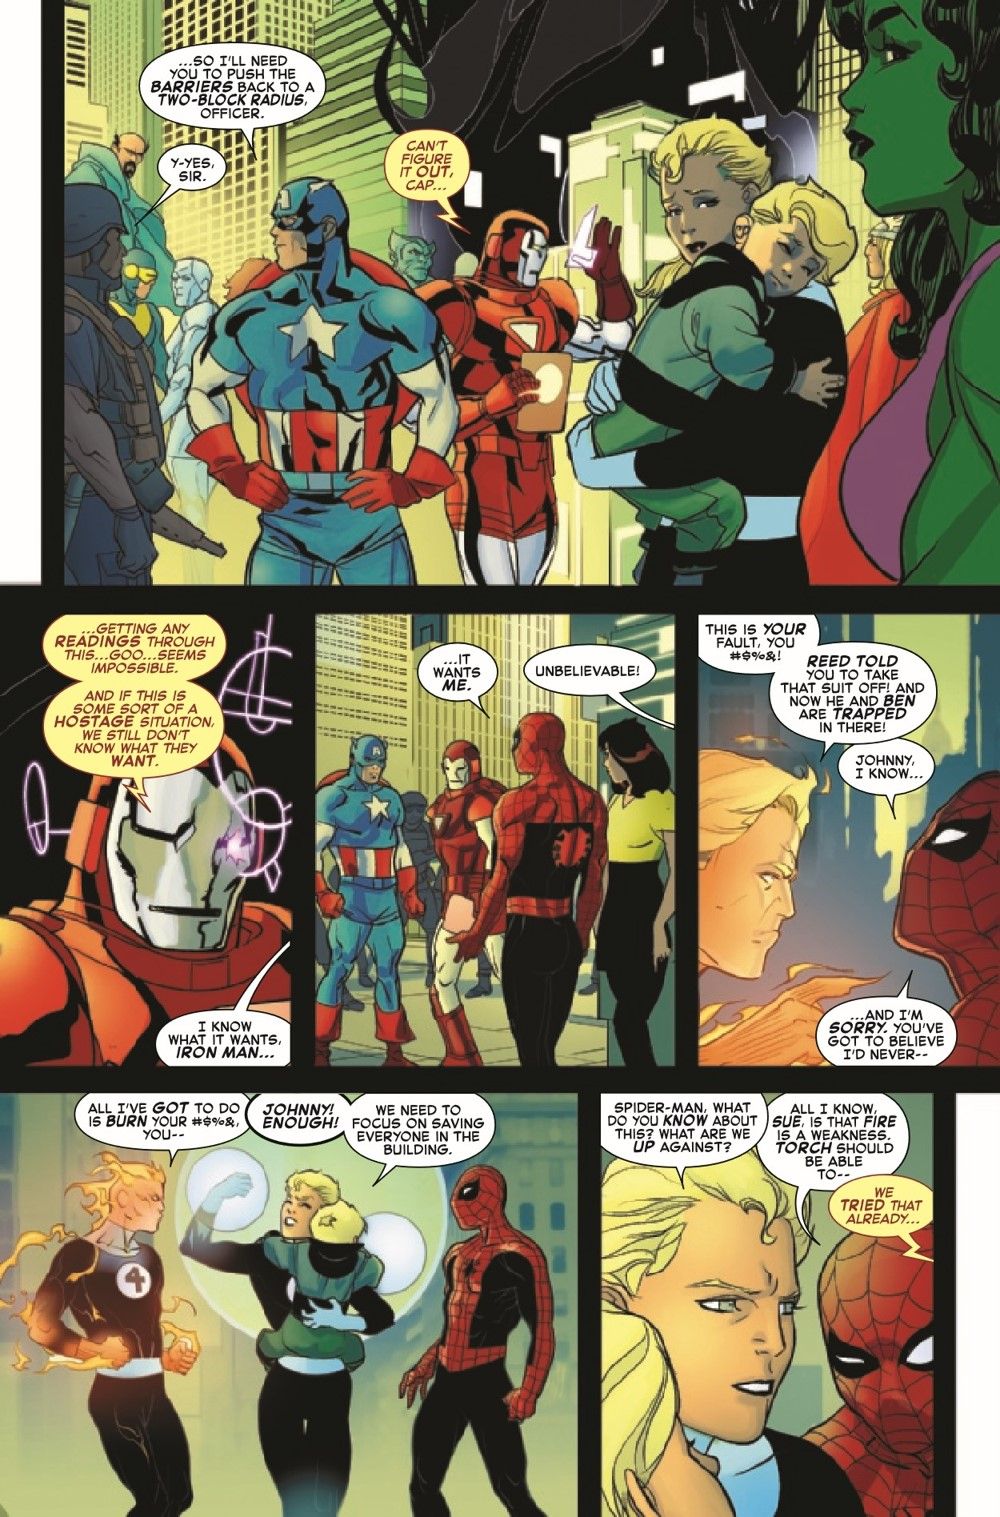 SMSPIDERSHADOW2021004_Preview-3 ComicList Previews: SPIDER-MAN SPIDER'S SHADOW #4 (OF 5)